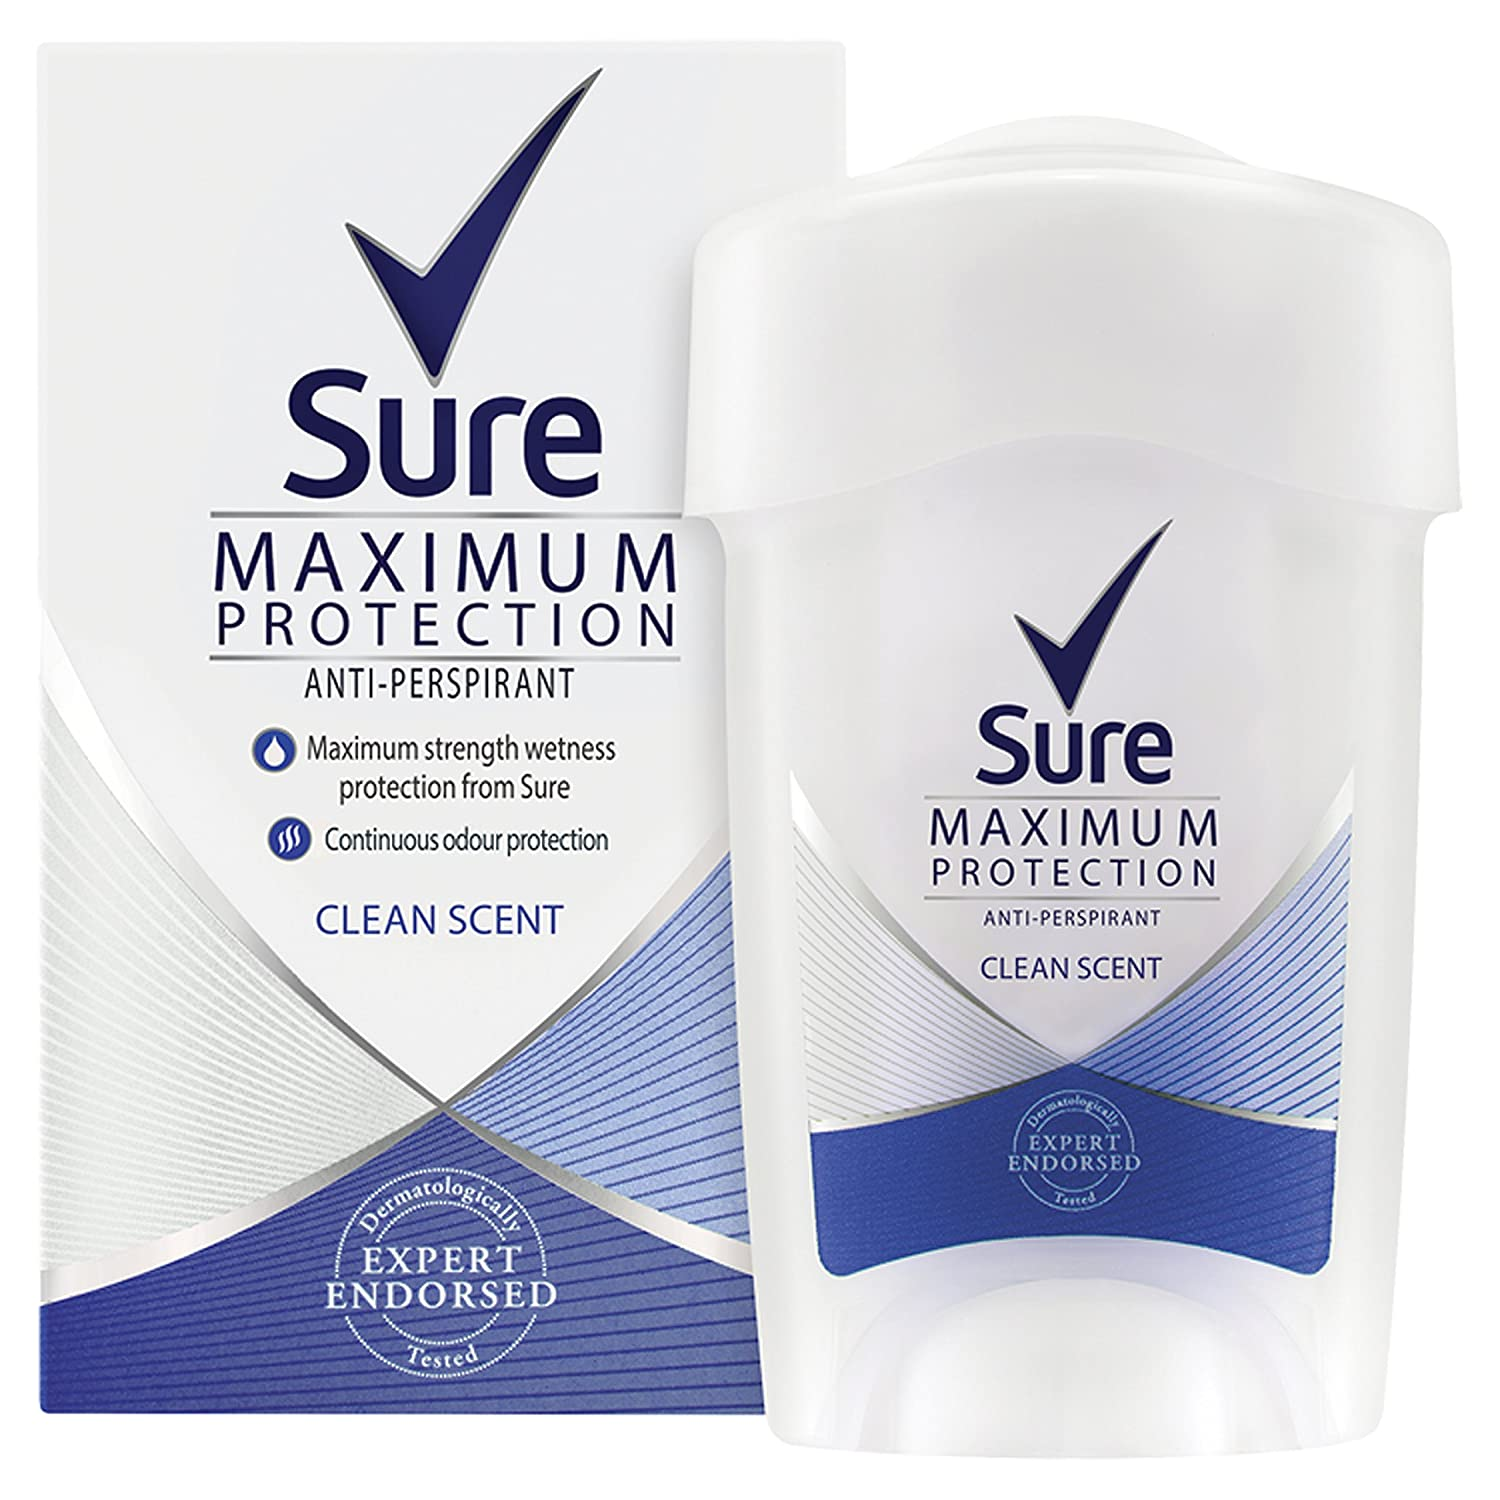 Sure Men Maximum Protection Clean Scent Anti-Perspirant Deodorant Cream, 45 ml, Pack of 6 Unilever 8864436